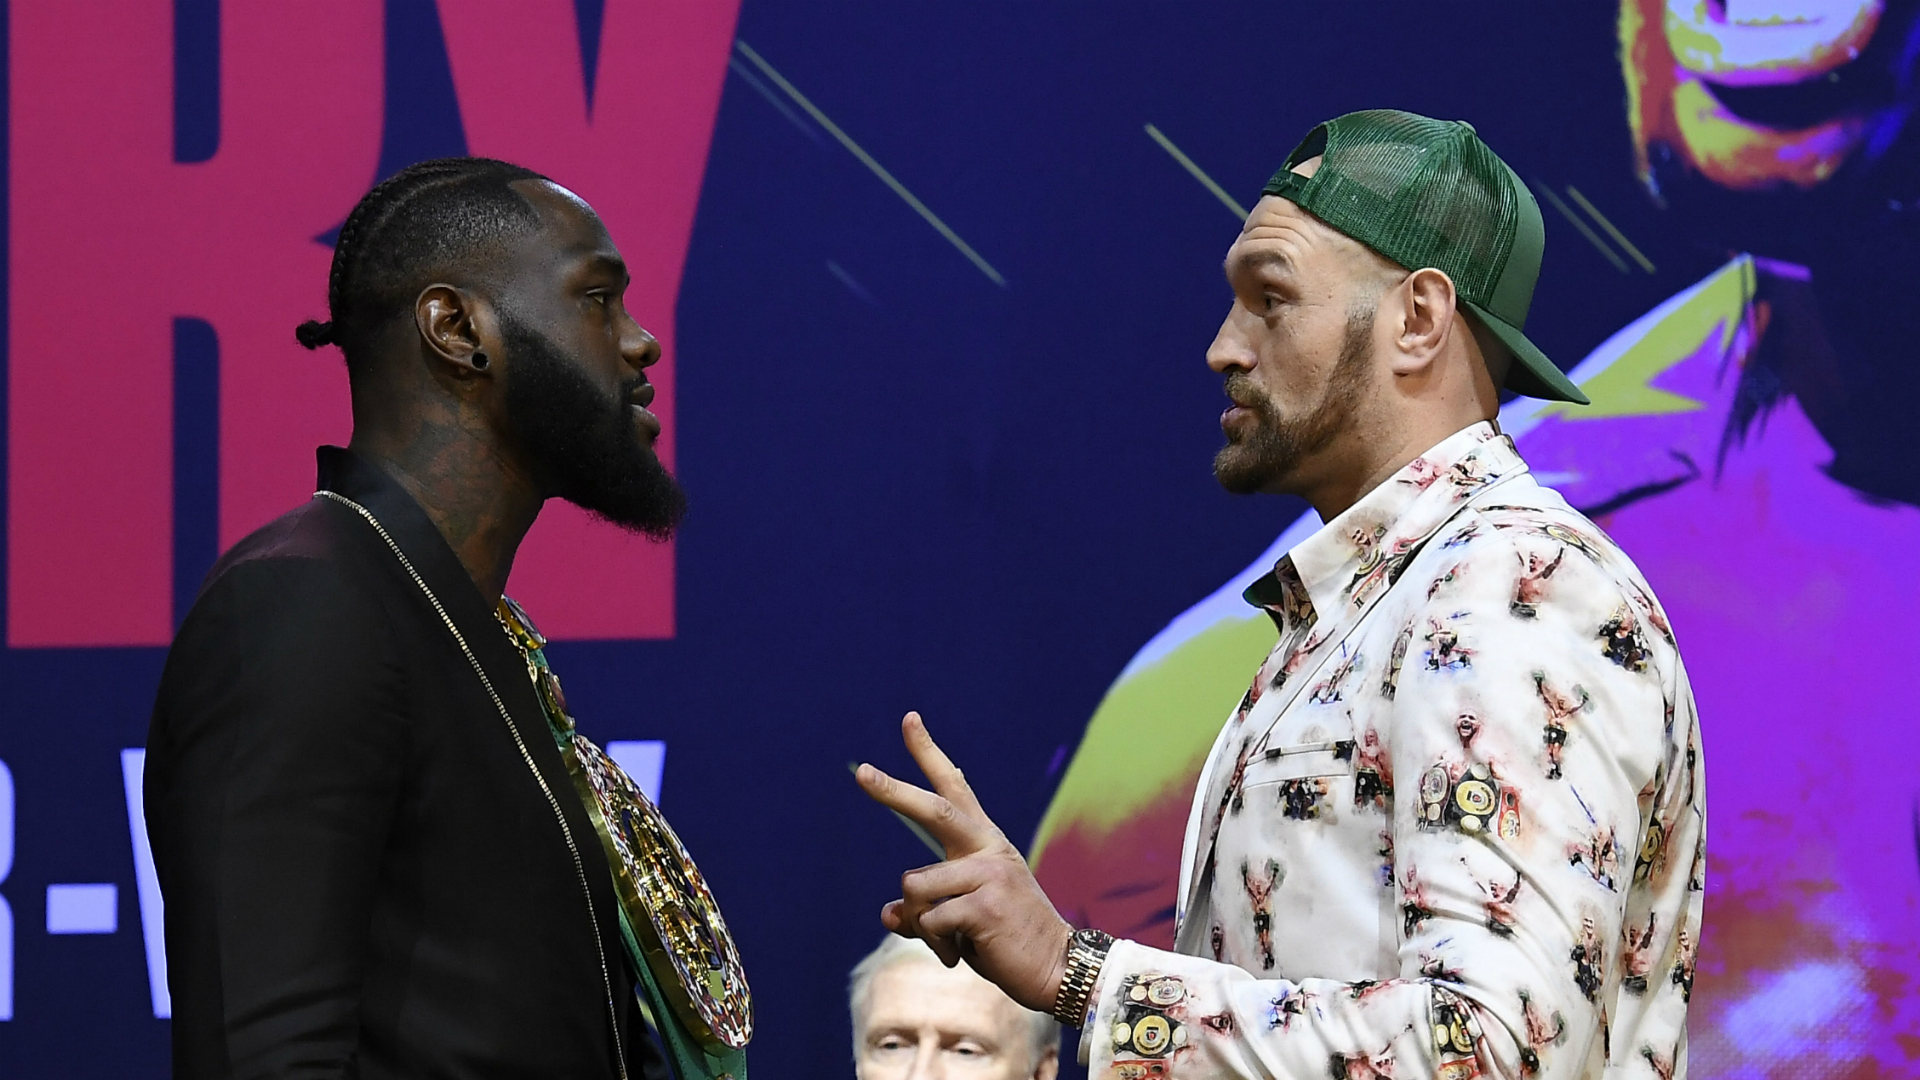 Wilder and Fury face-off cancelled after pre-fight flare-up